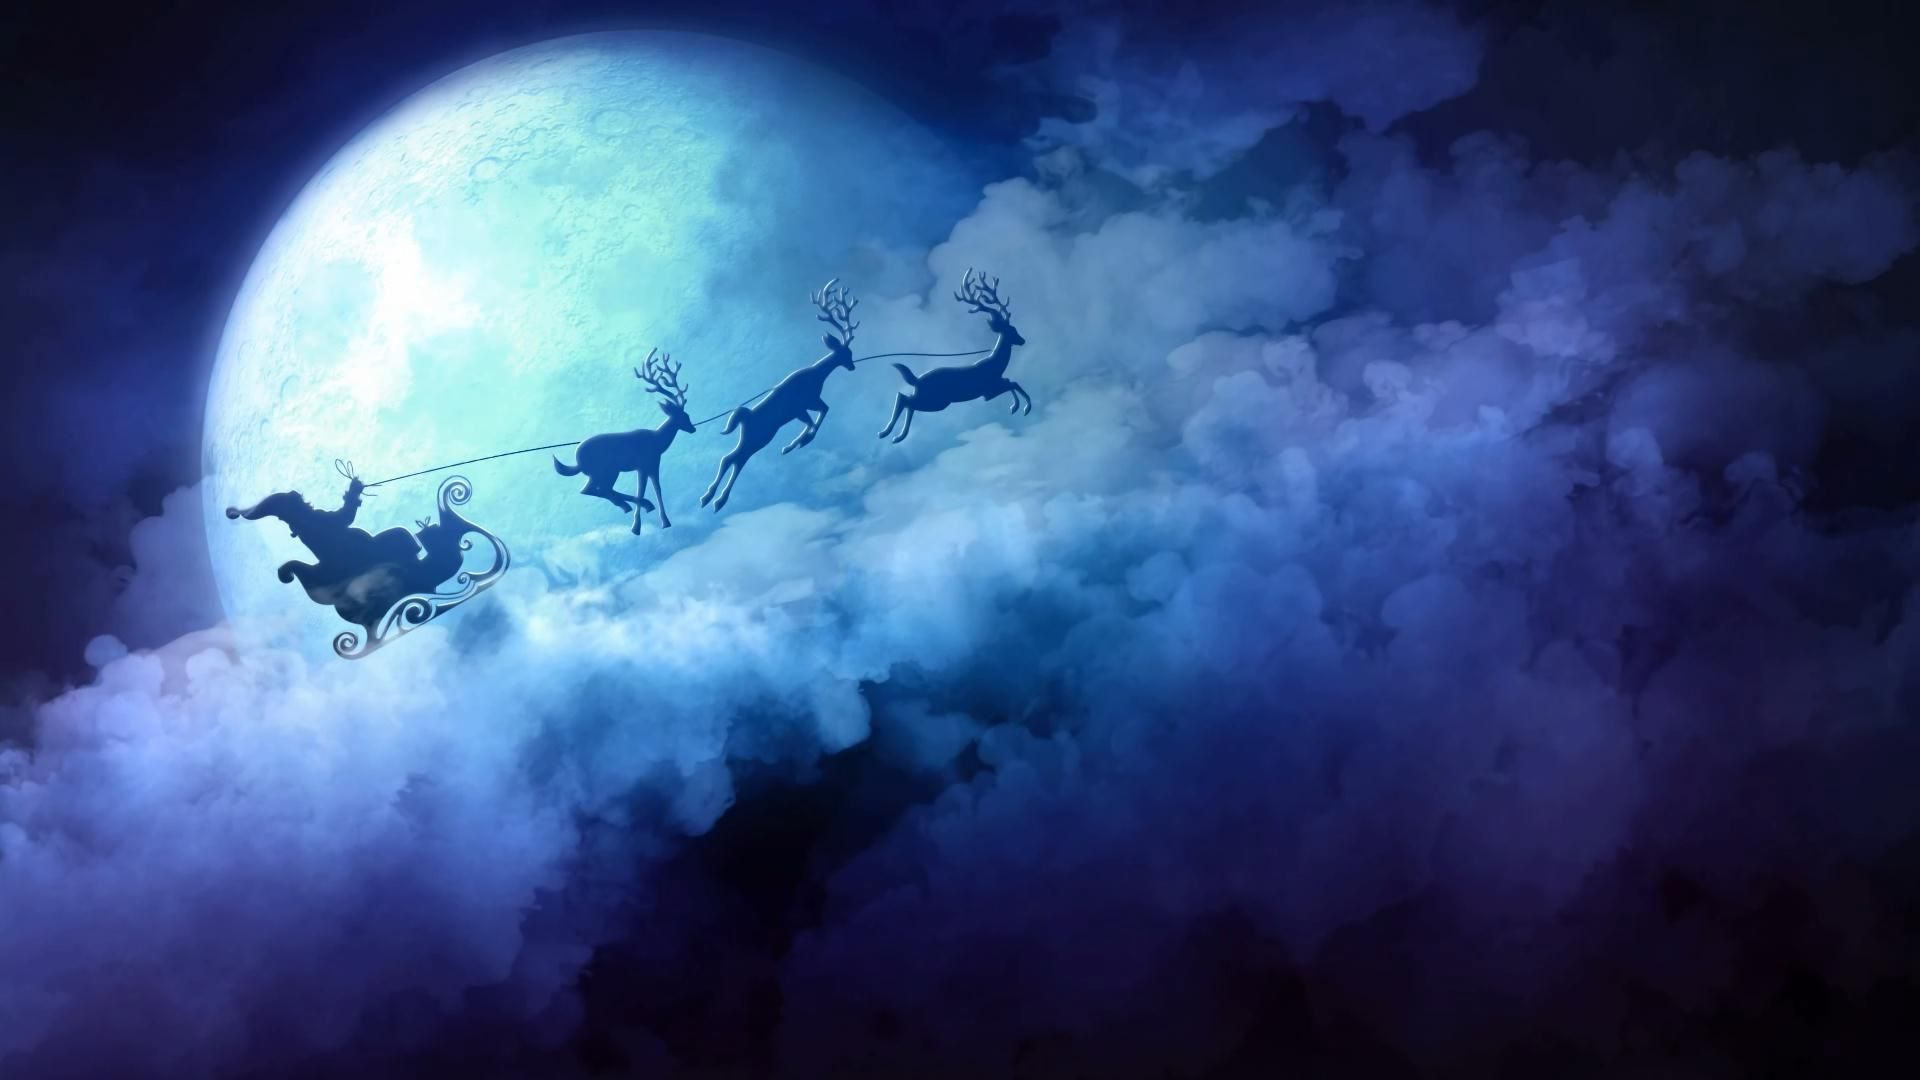 Collection of hundreds of Live Christmas Wallpaper from all over the world. | Wallpapers in 2018 ...